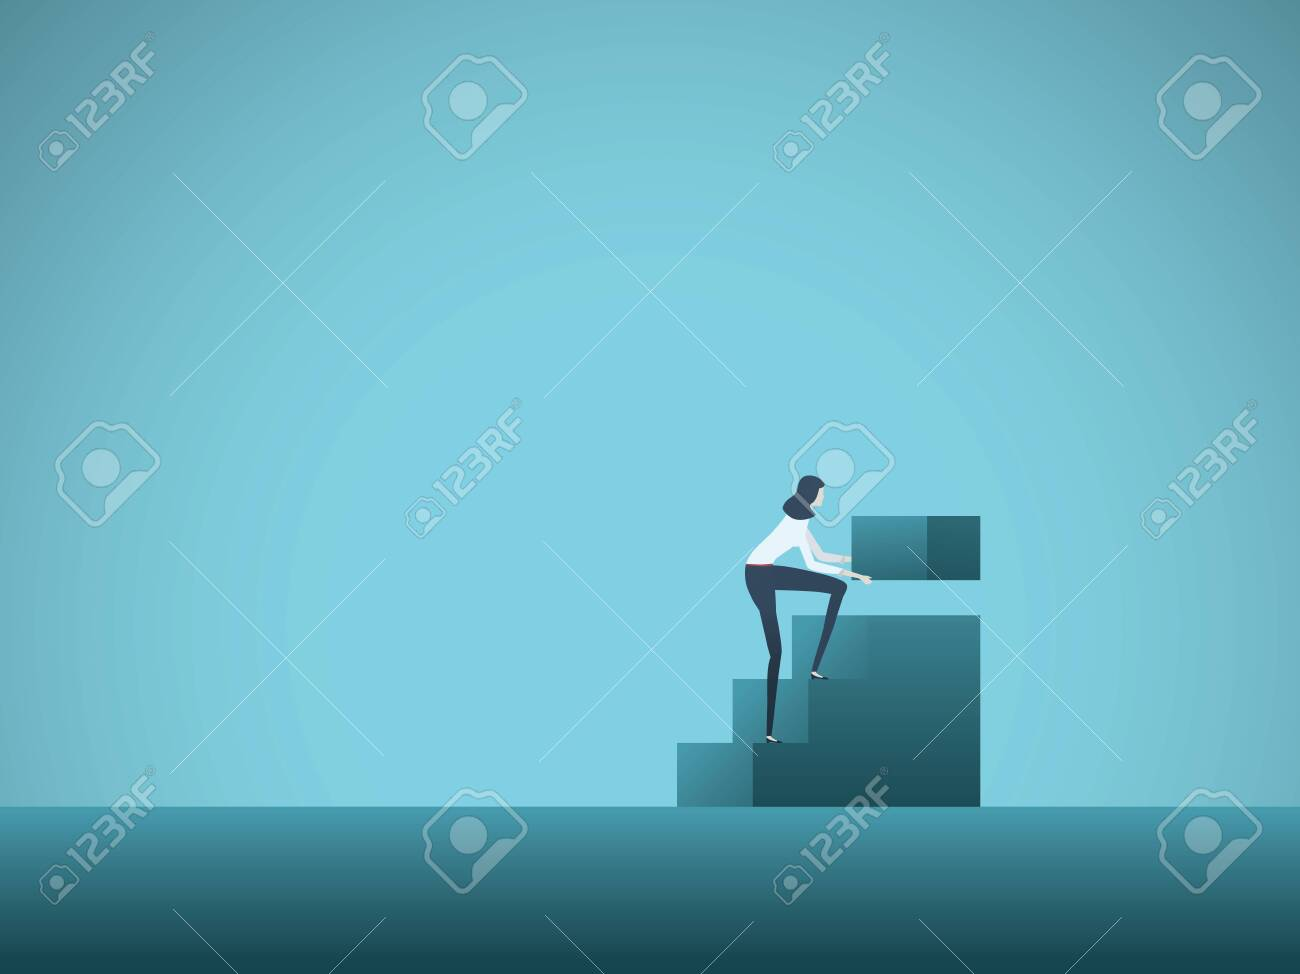 Business growth and career development vector concept with businesswoman building steps. Symbol of career ladder, promotion, success, rise, ambition and motivation. Eps10 illustration. - 122551175